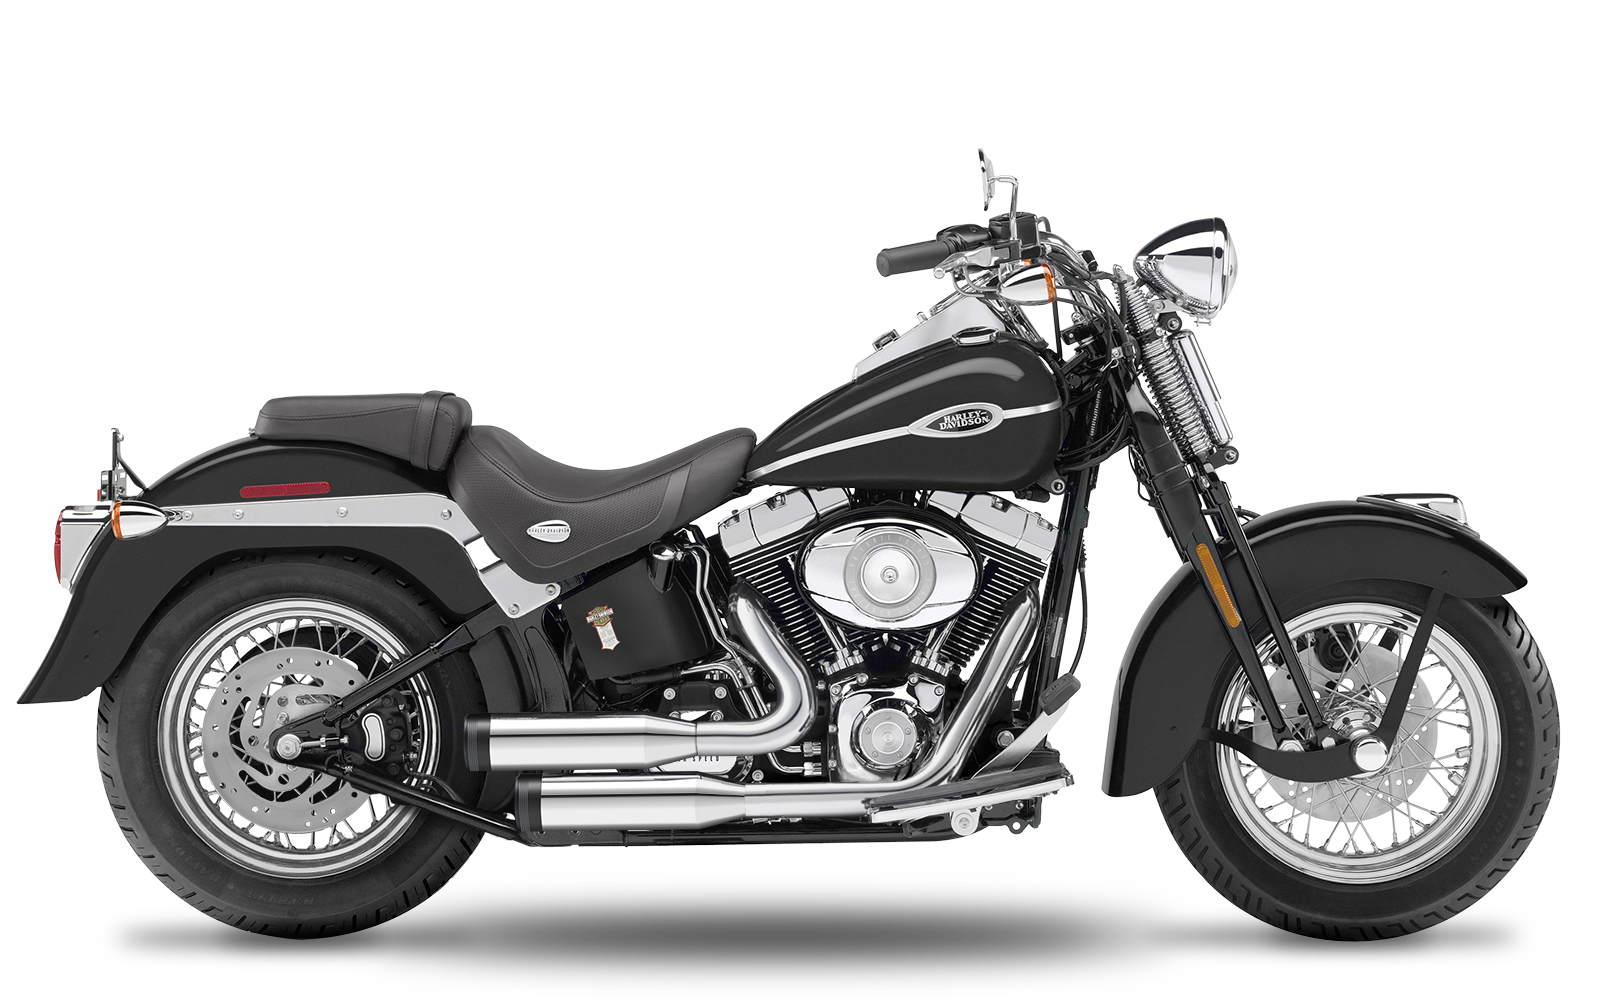 Softail - Springer Classic - TC88 - 2000-2006 - Complete systems